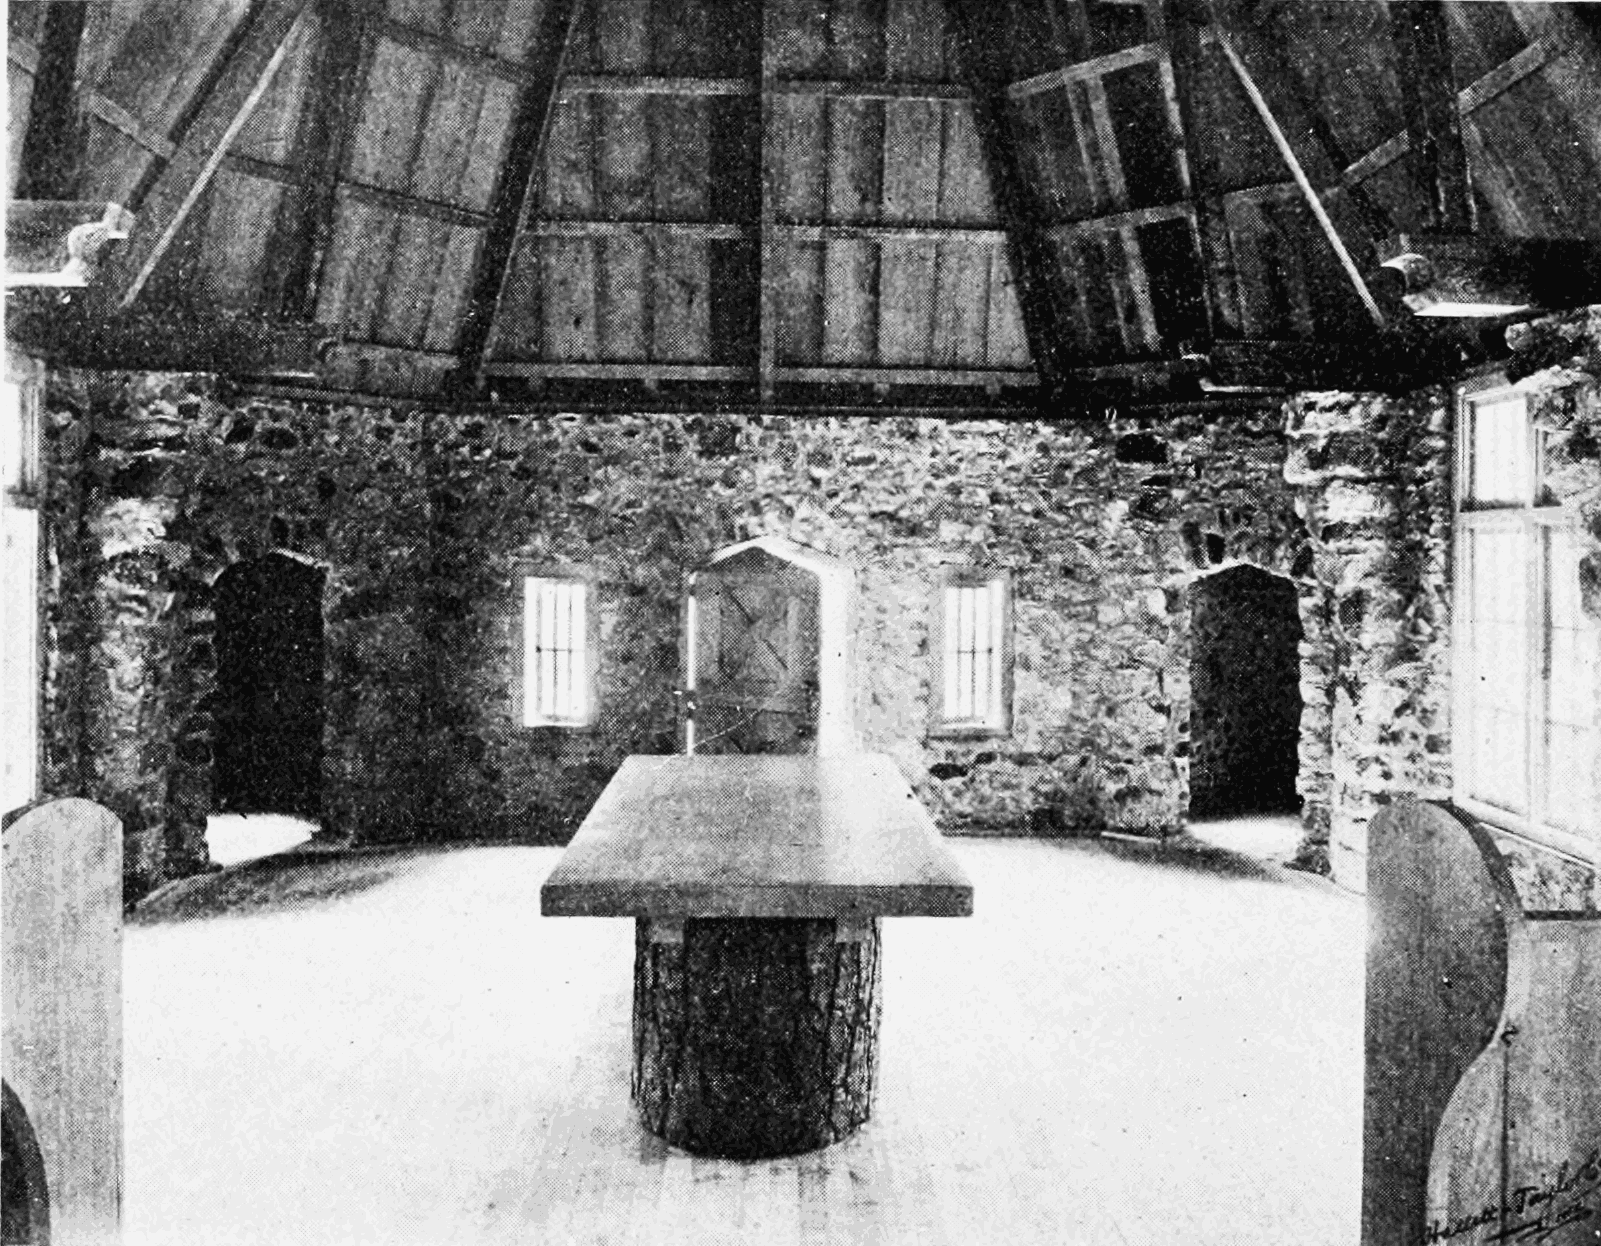 PSM V65 D384 Interior of the le conte memorial lodge.png